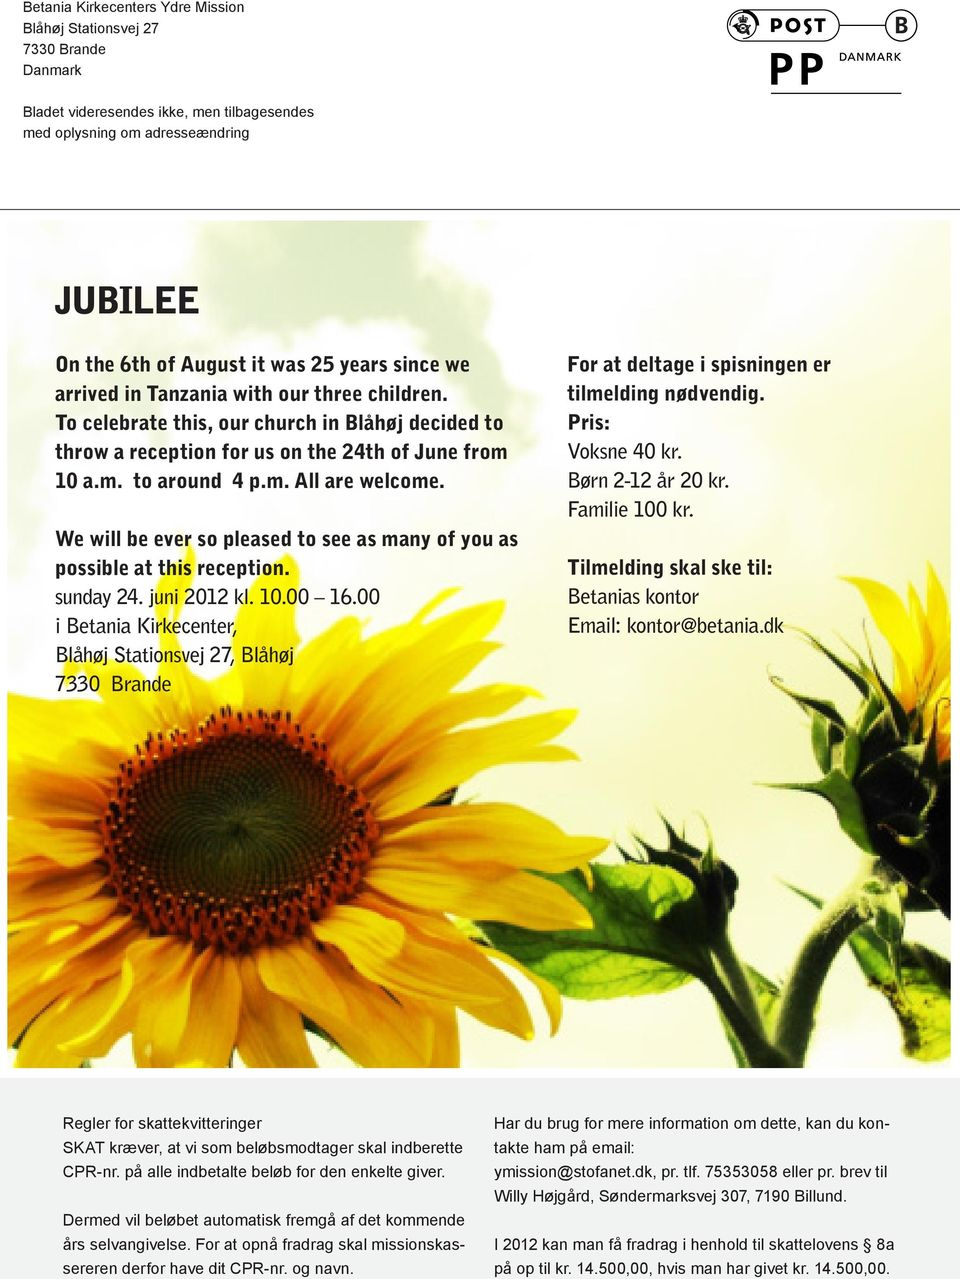 We will be ever so pleased to see as many of you as possible at this reception. sunday 24. juni 2012 kl. 10.00 16.